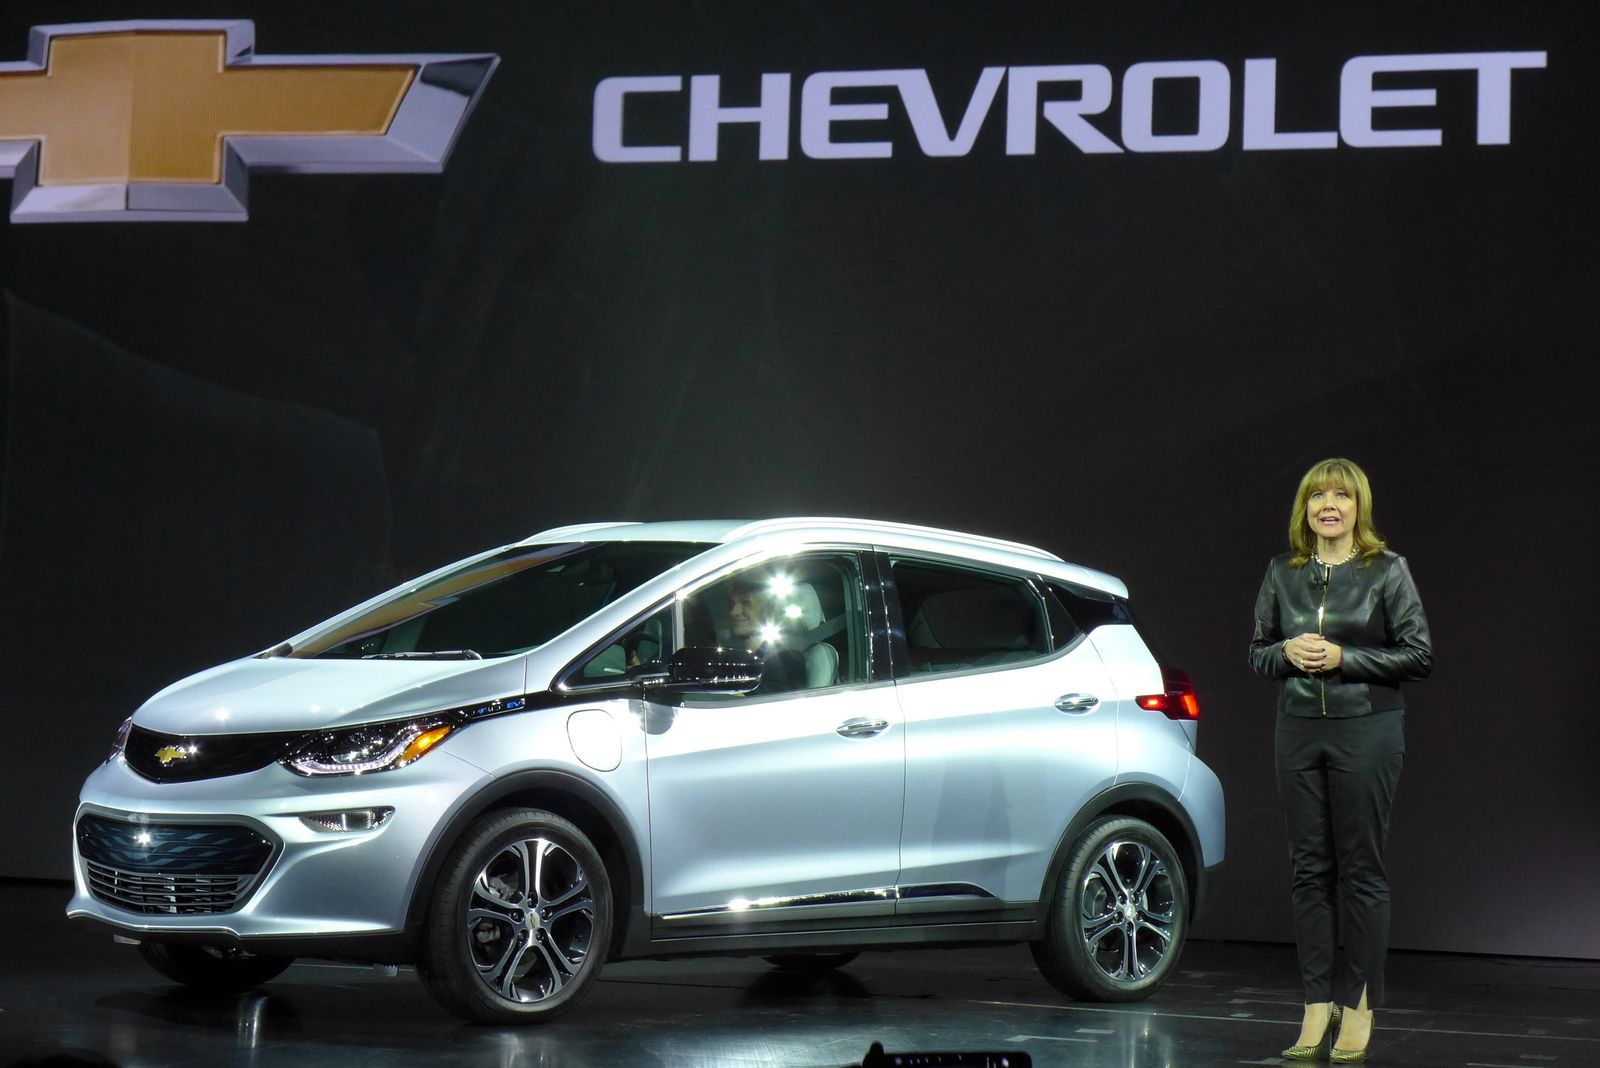 Chevrolet Bolt / Elektroauto / CES 2016 / Mary Barra